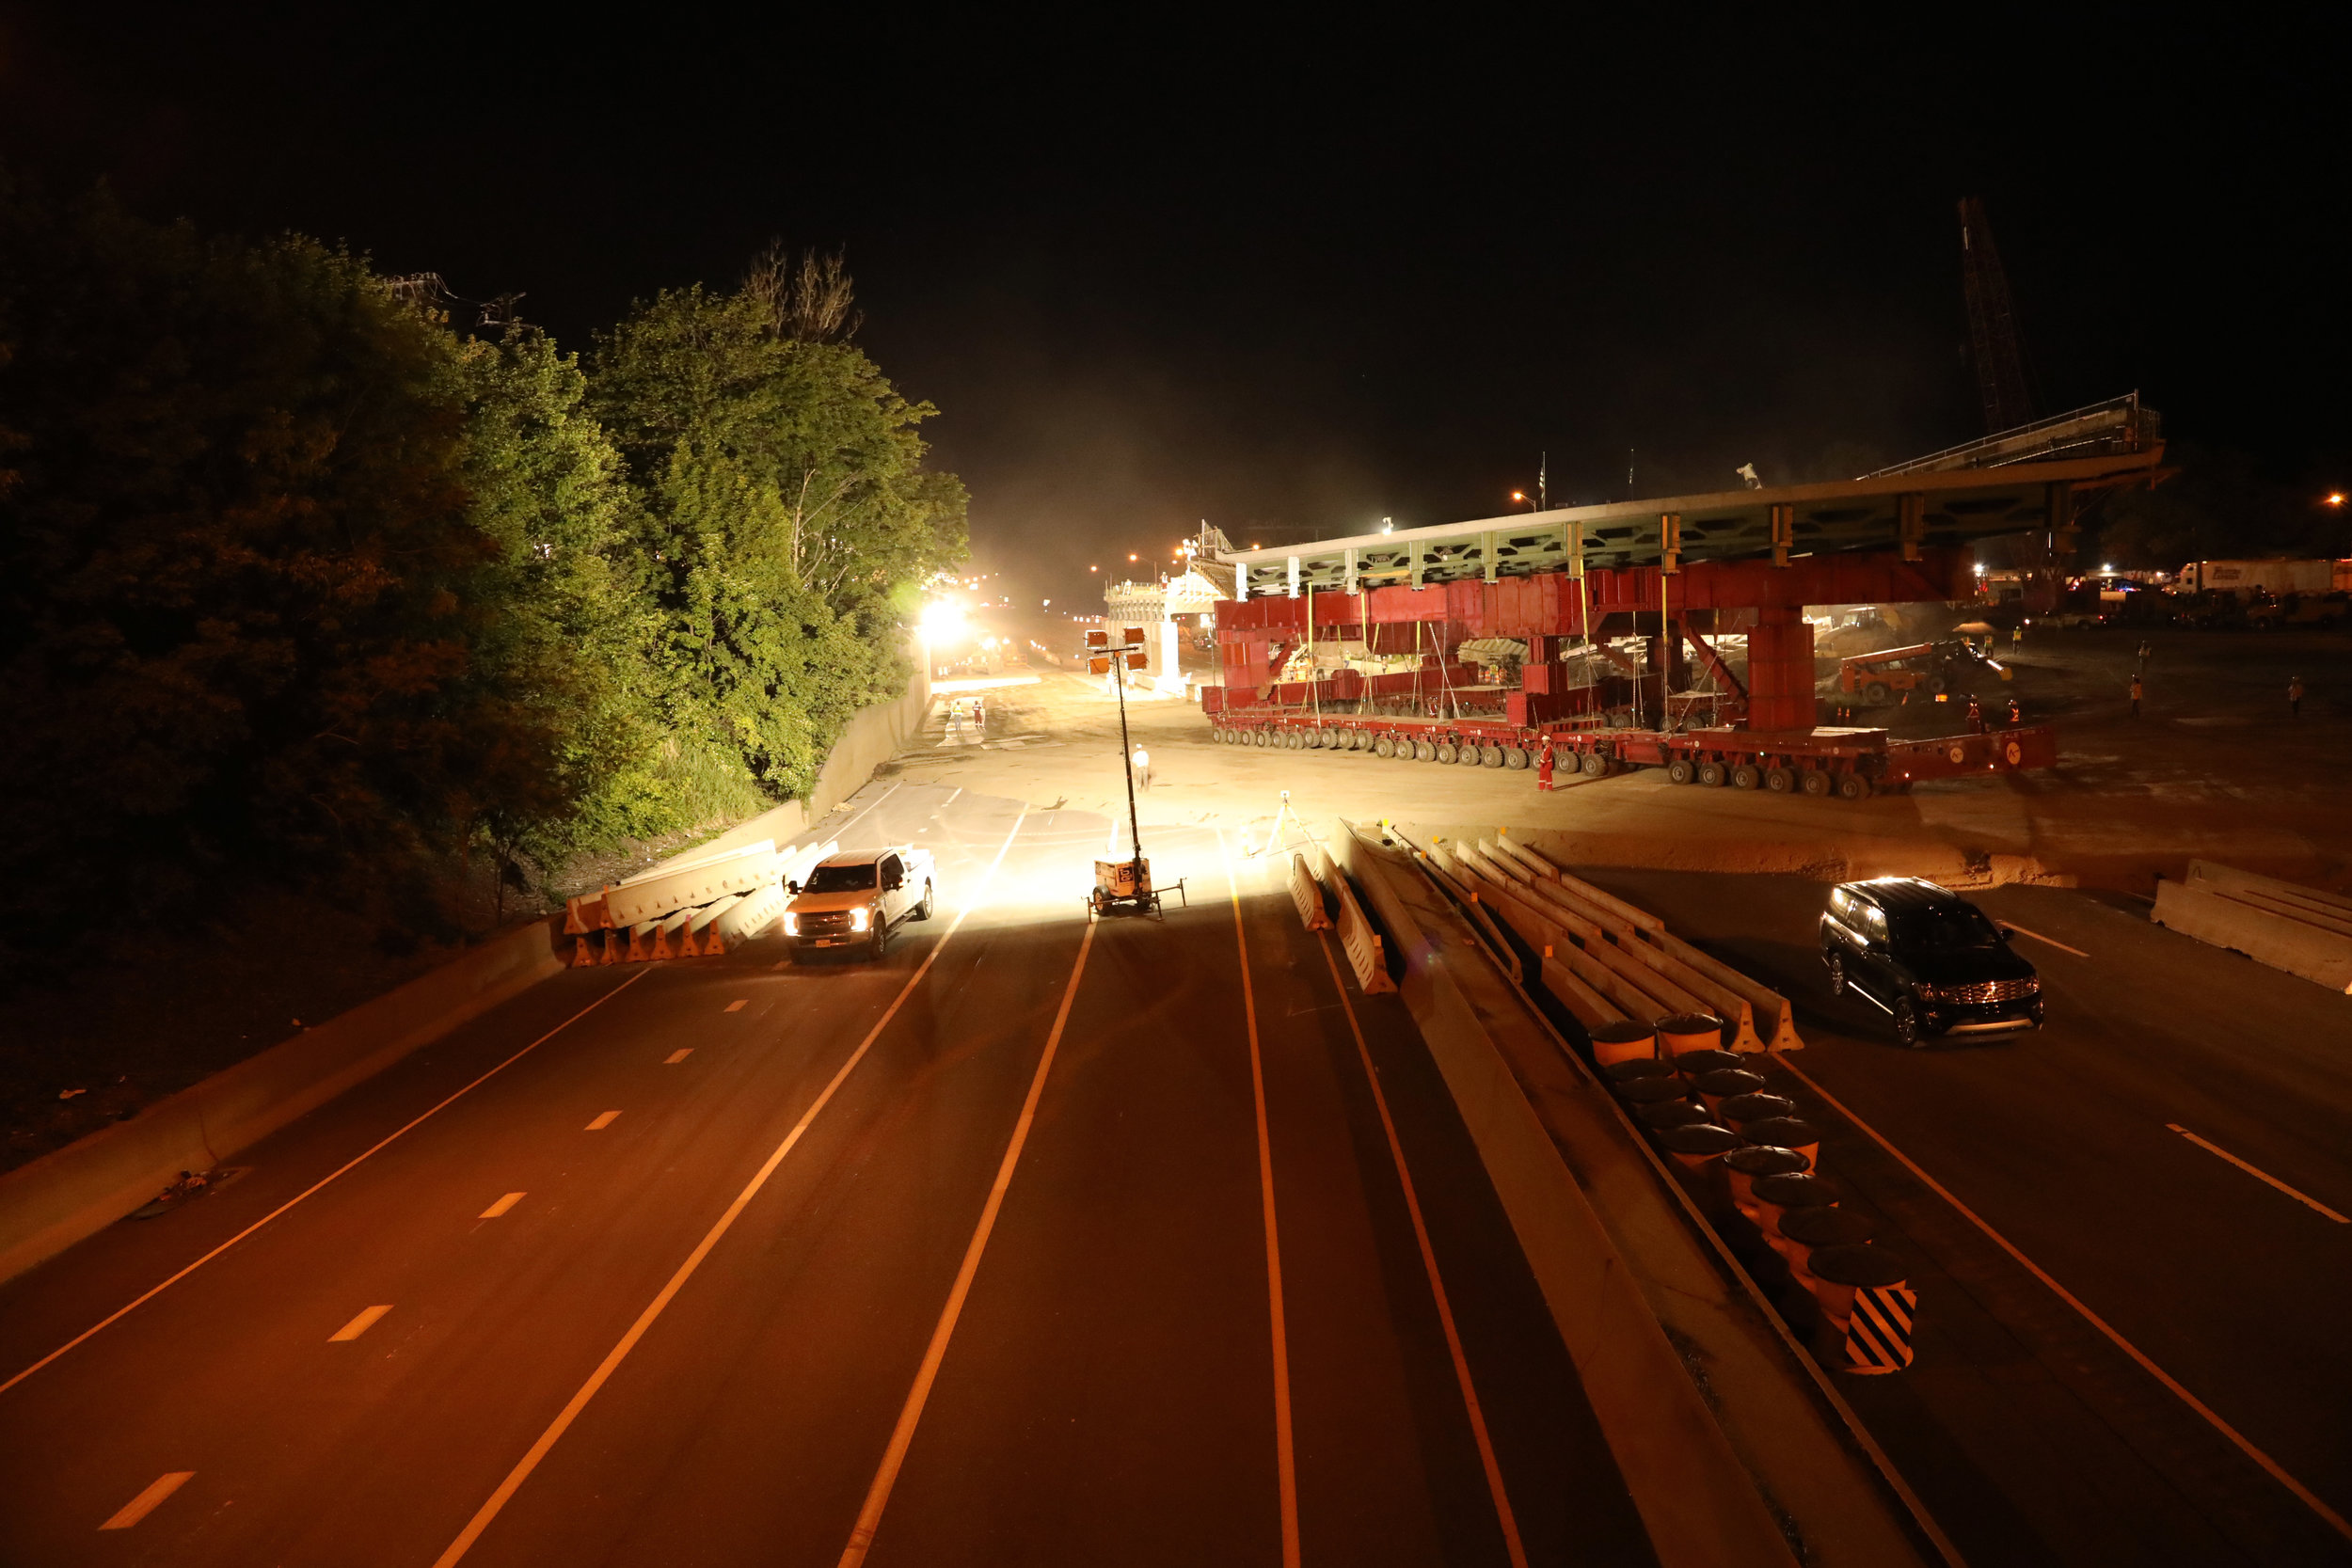 Span 1 being moved into place.  Taken the night of 6/8/19 by Pete Venoutsos